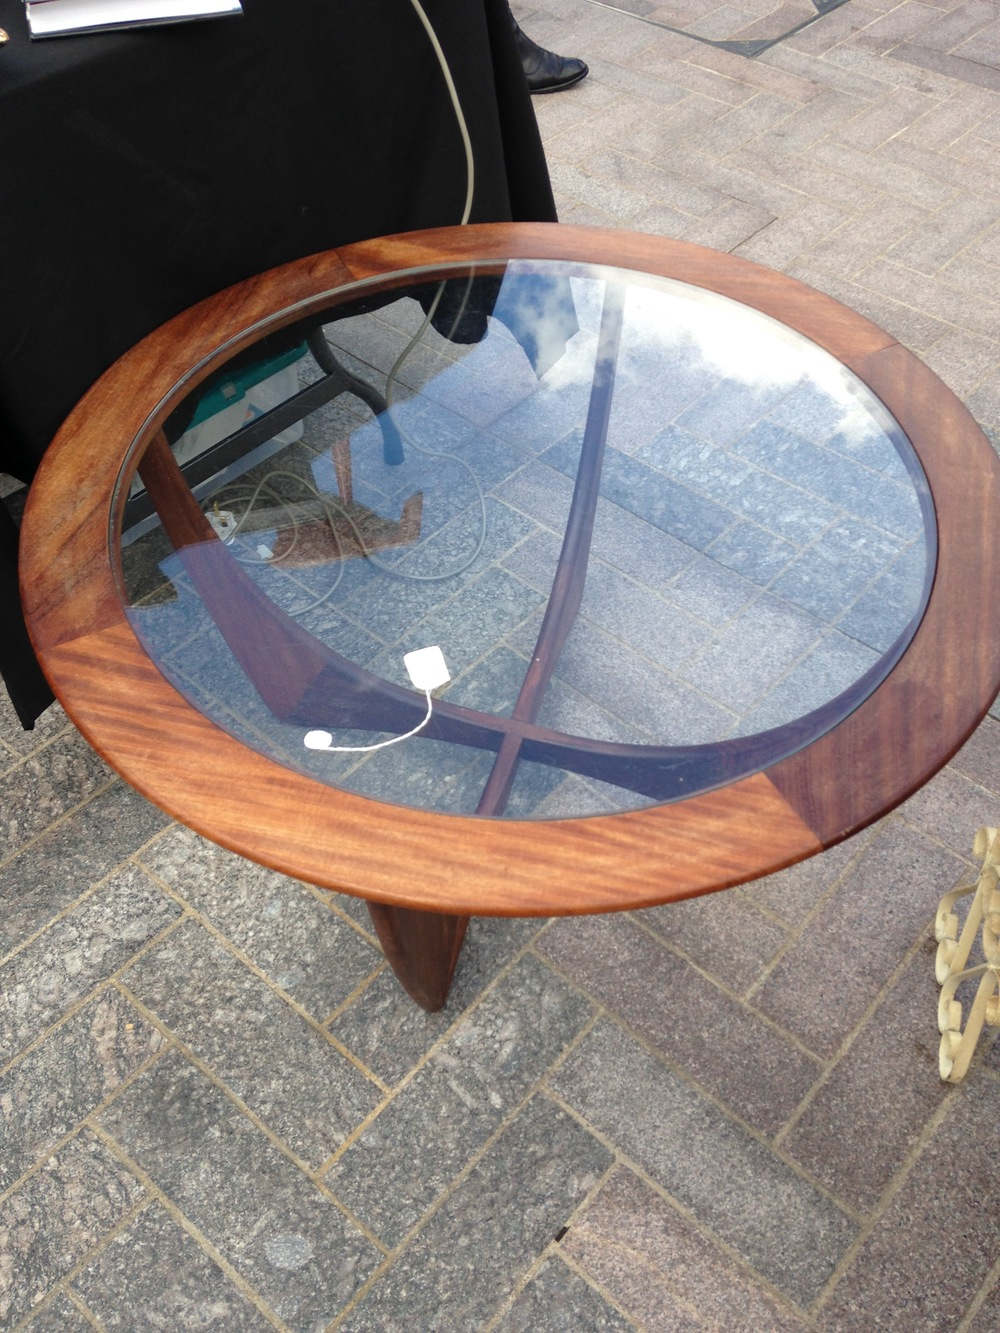 I was very, very tempted by this gorgeous coffee table - if only I had the space!